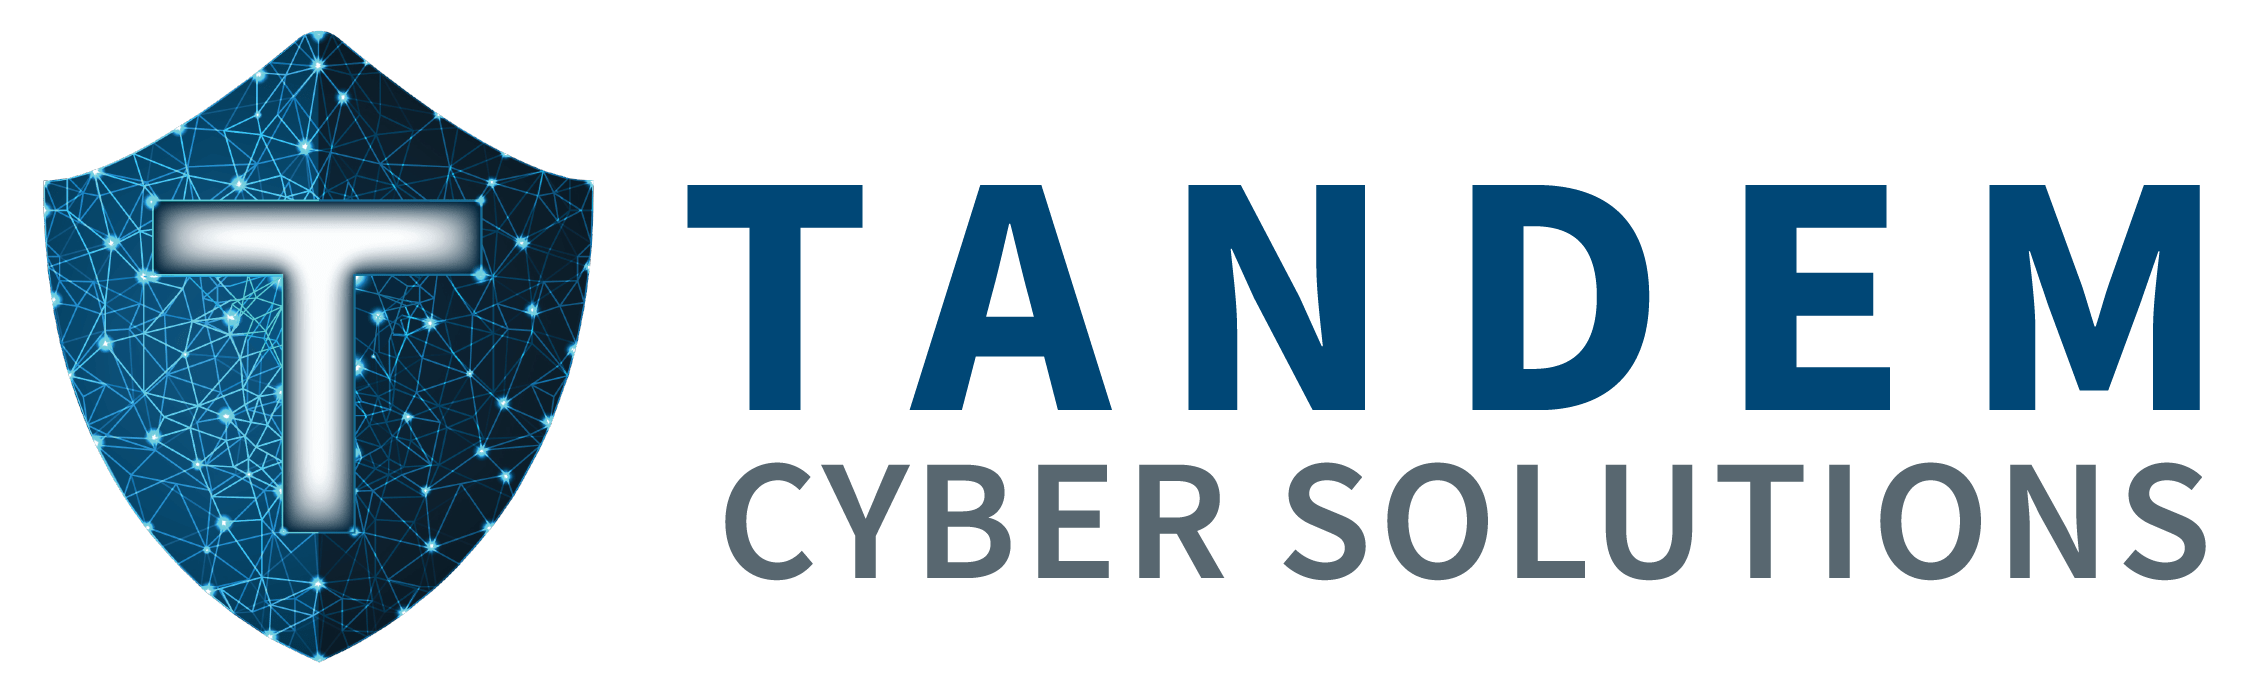 Tandem Cyber Solutions